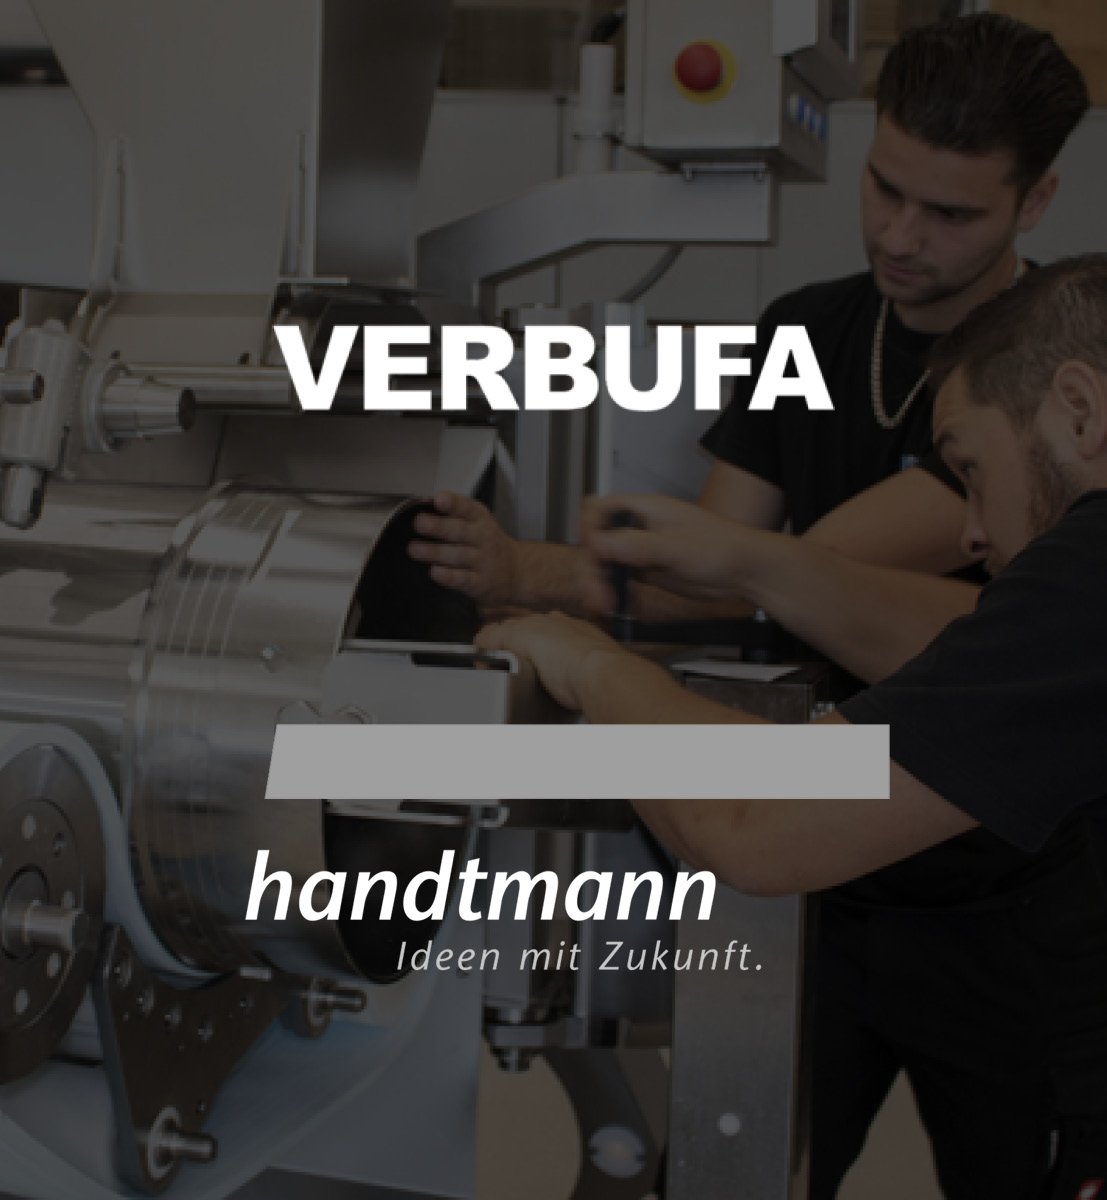 DEX international M&A advised Verbufa on the sale to Handtmann